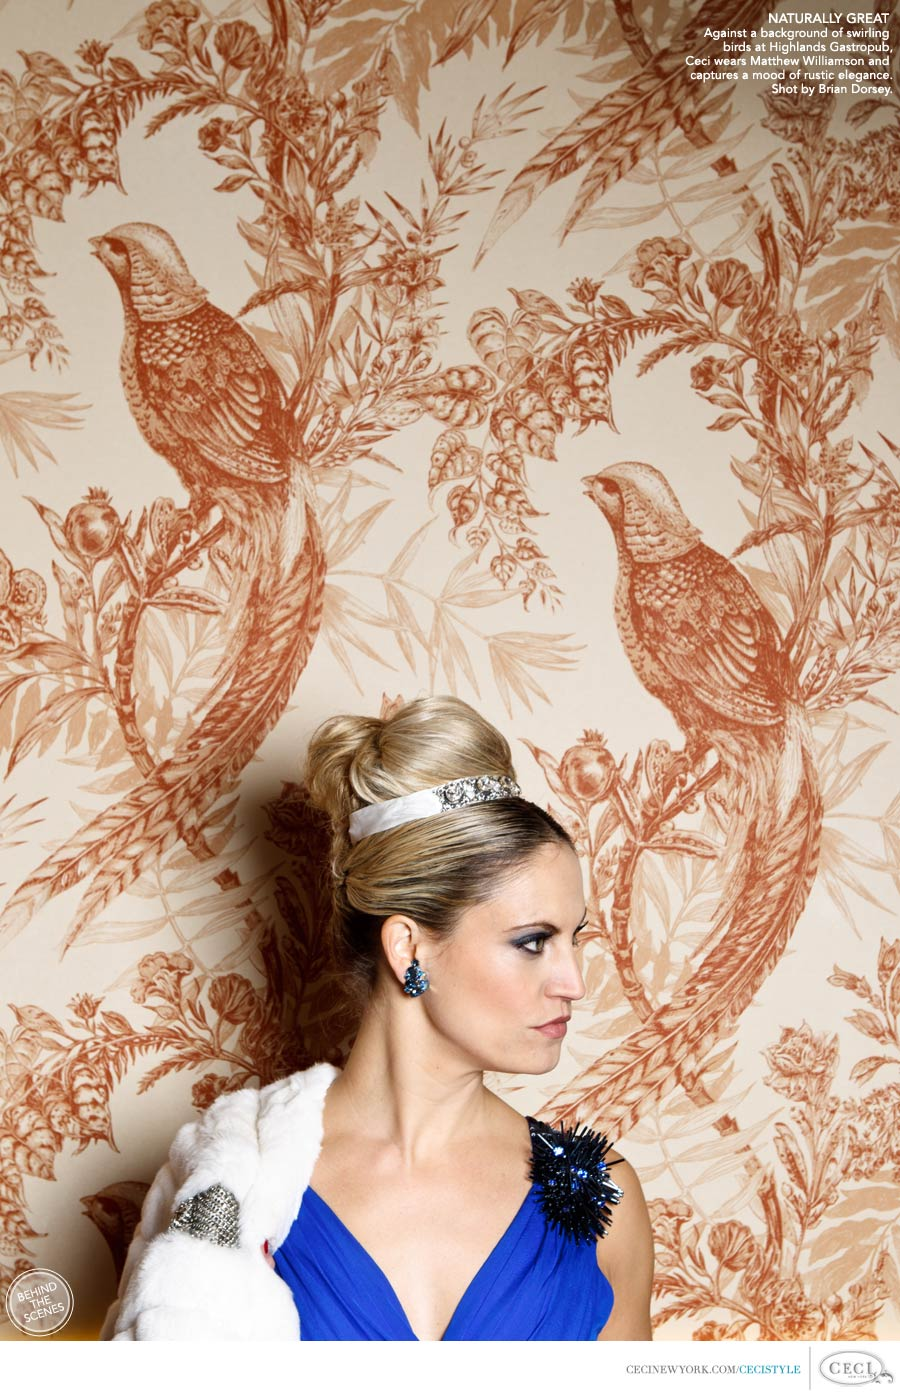 Ceci Johnson of Ceci New York - NATURALLY GREAT: Against a background of swirling birds at Highlands Gastropub, Ceci wears Matthew Williamson and captures a mood of rustic elegance. Shot by Brian Dorsey.